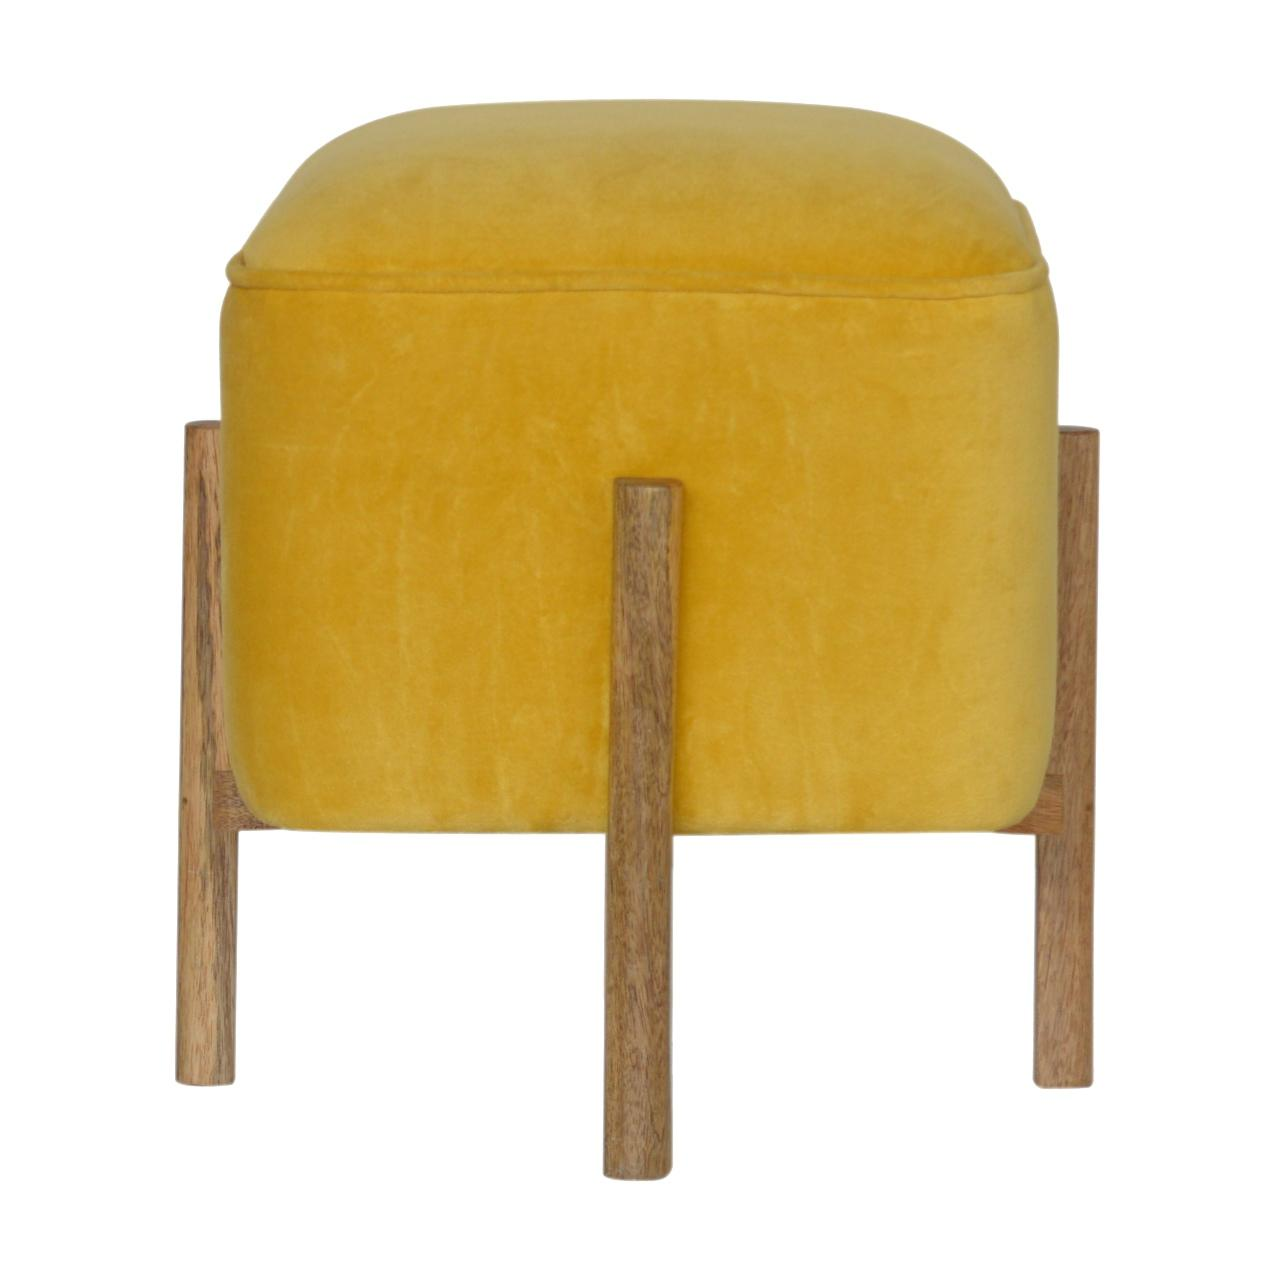 Velvet Footstool with Solid Wood Legs